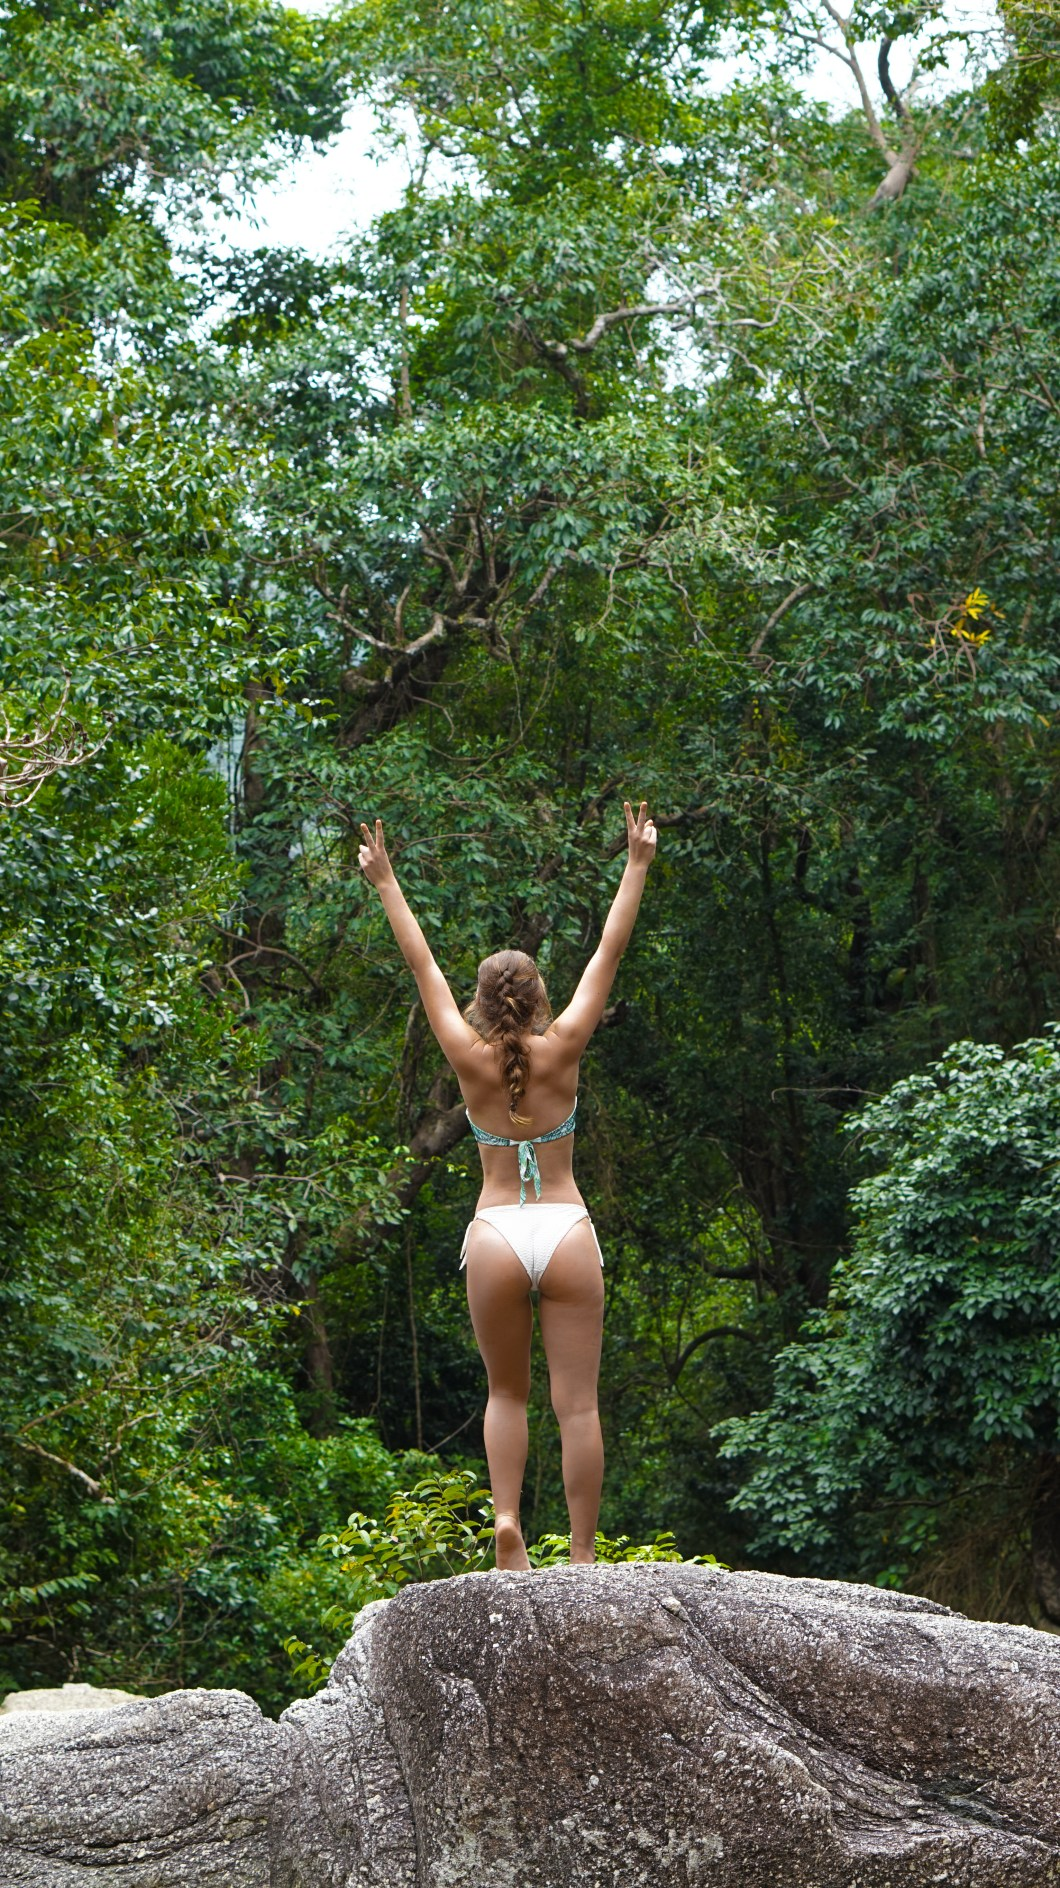 In the middle of the jungle